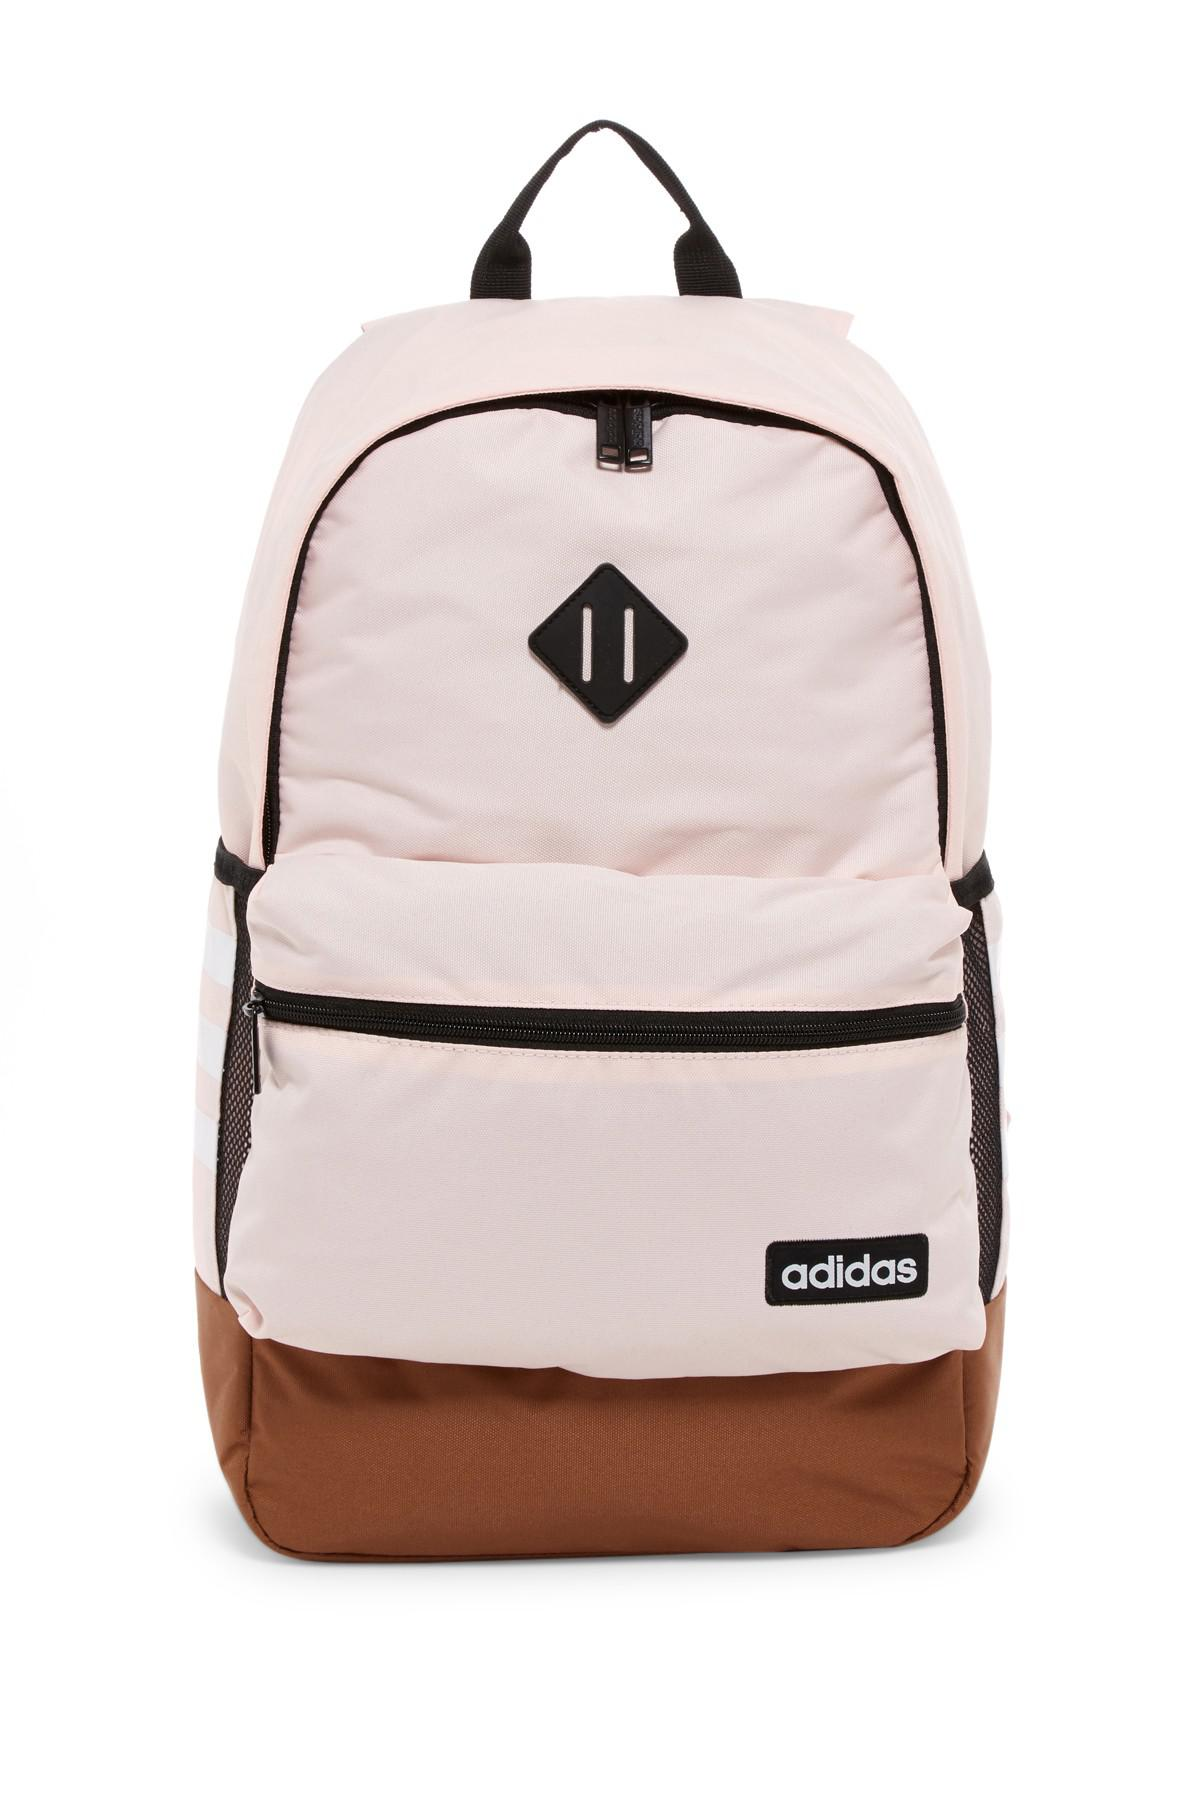 Lyst - adidas Classic 3s Backpack in Pink b7cd1b6eb245d